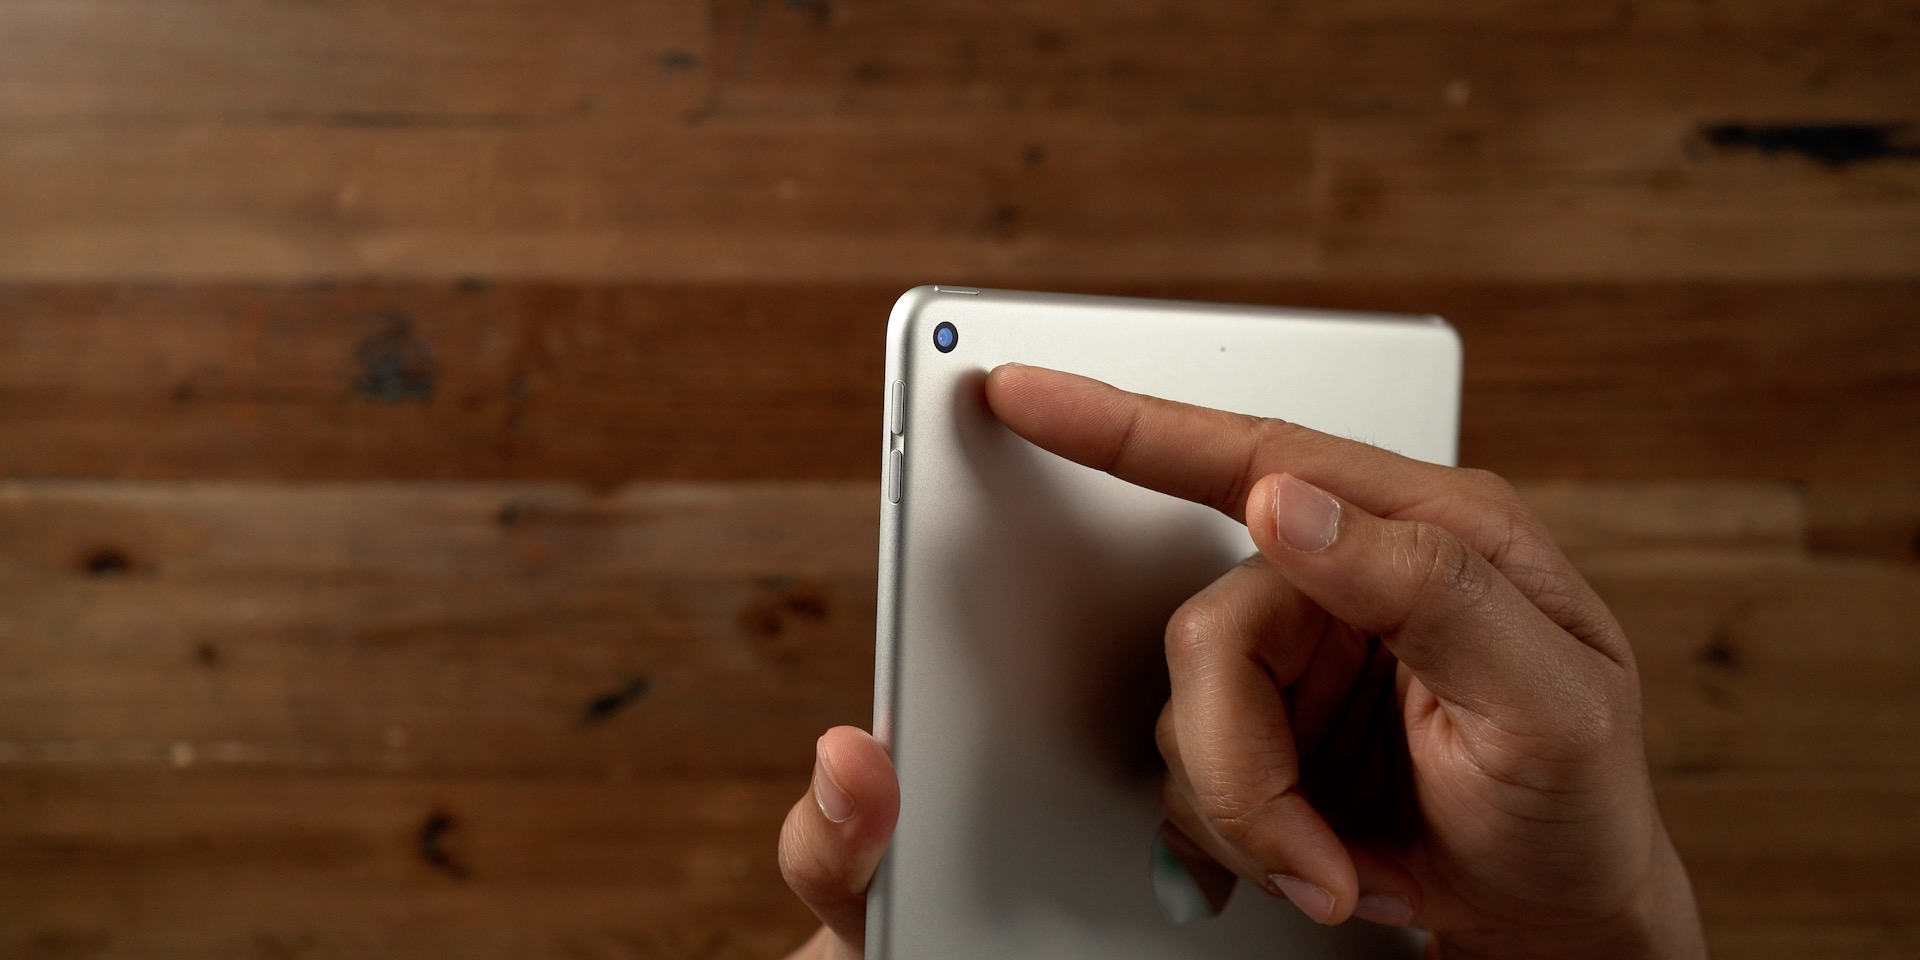 iPad Air 3 review: Semi-Pro [Video] - 9to5Mac